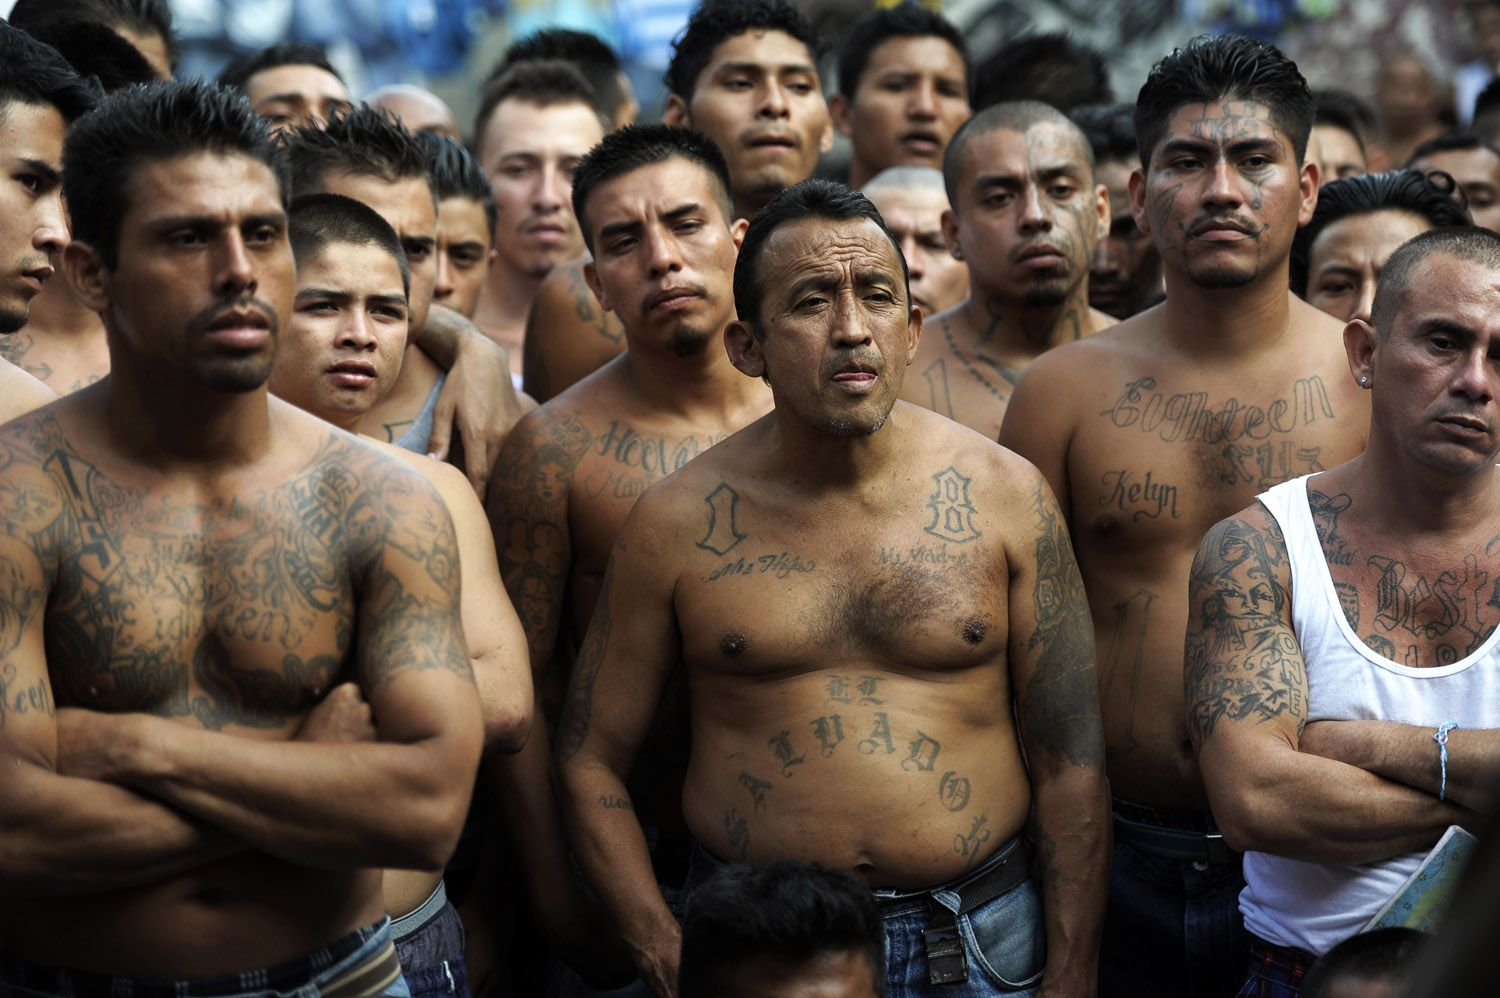 http://nypost.com/2014/11/06/the-youth-are-theirs-el-salvadors-horrifying-culture-of-gang-rape/